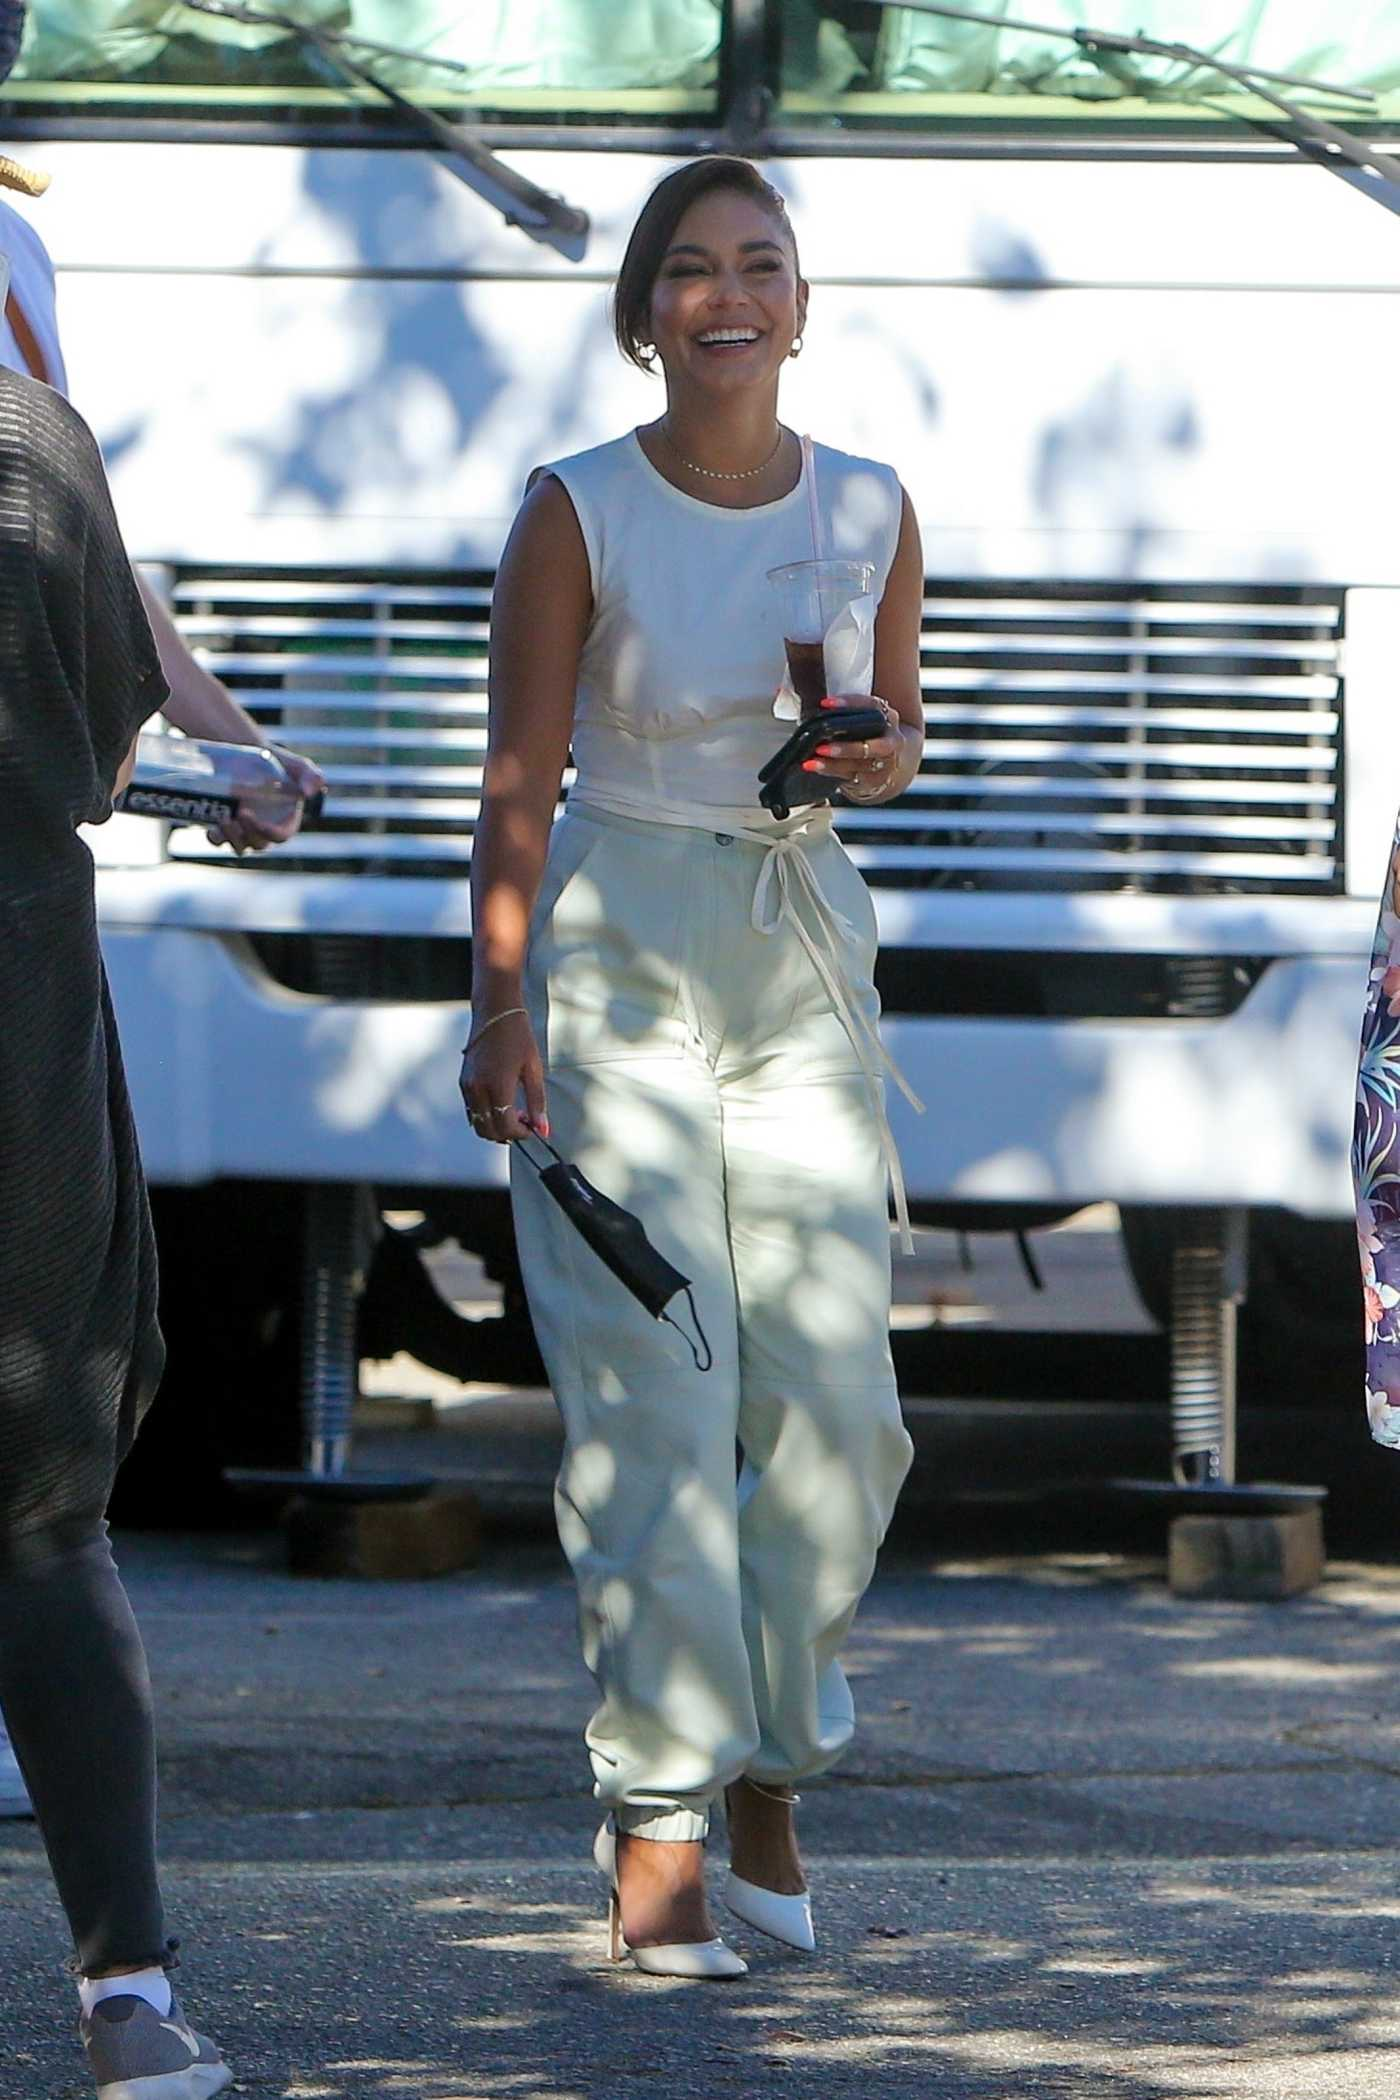 Vanessa Hudgens in a White Top Was Seen Out in Los Angeles 08/11/2020